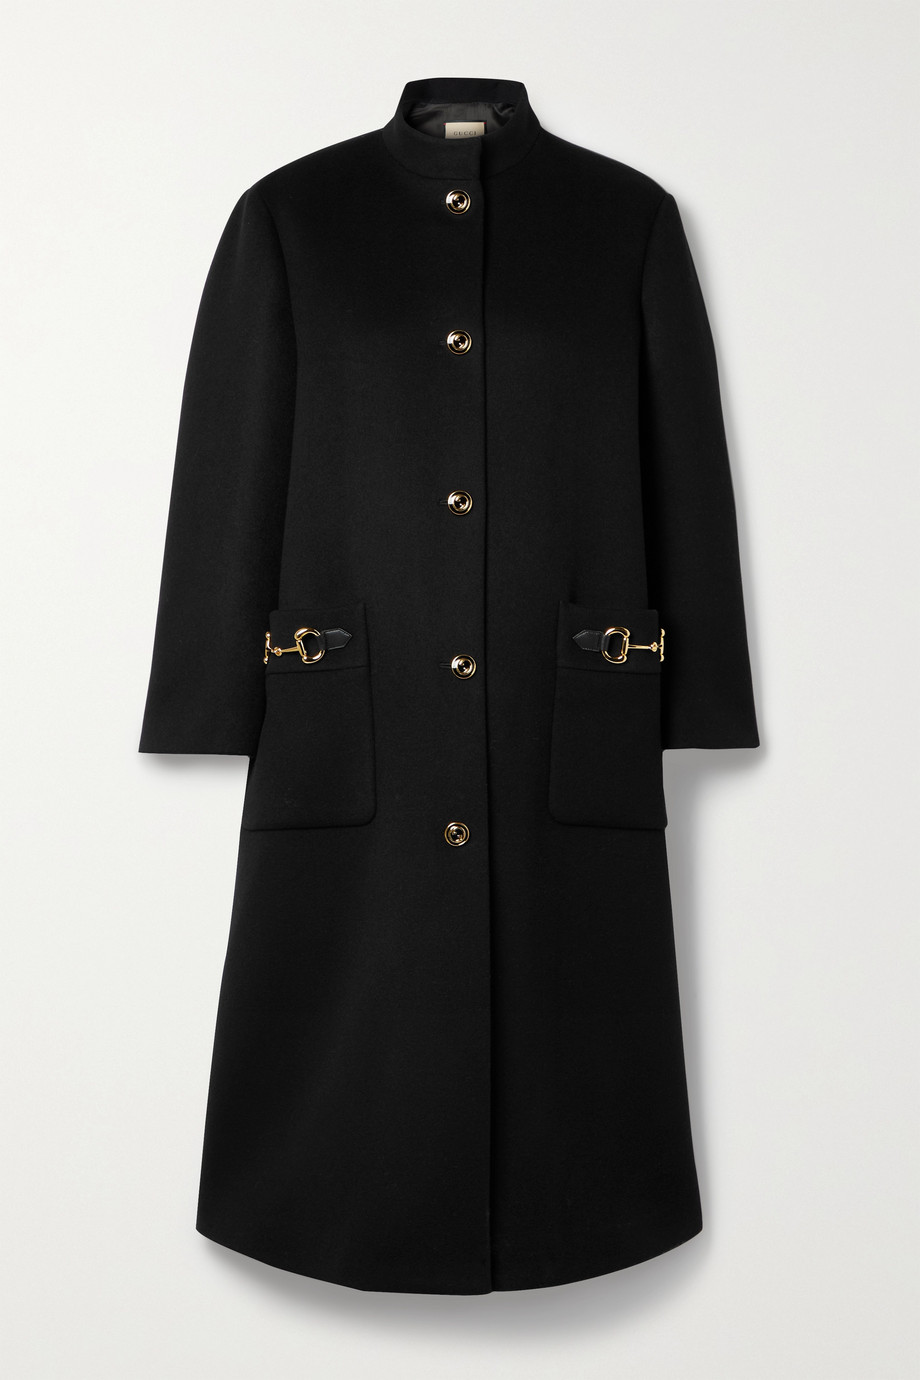 Gucci Horsebit-detailed wool-blend felt coat